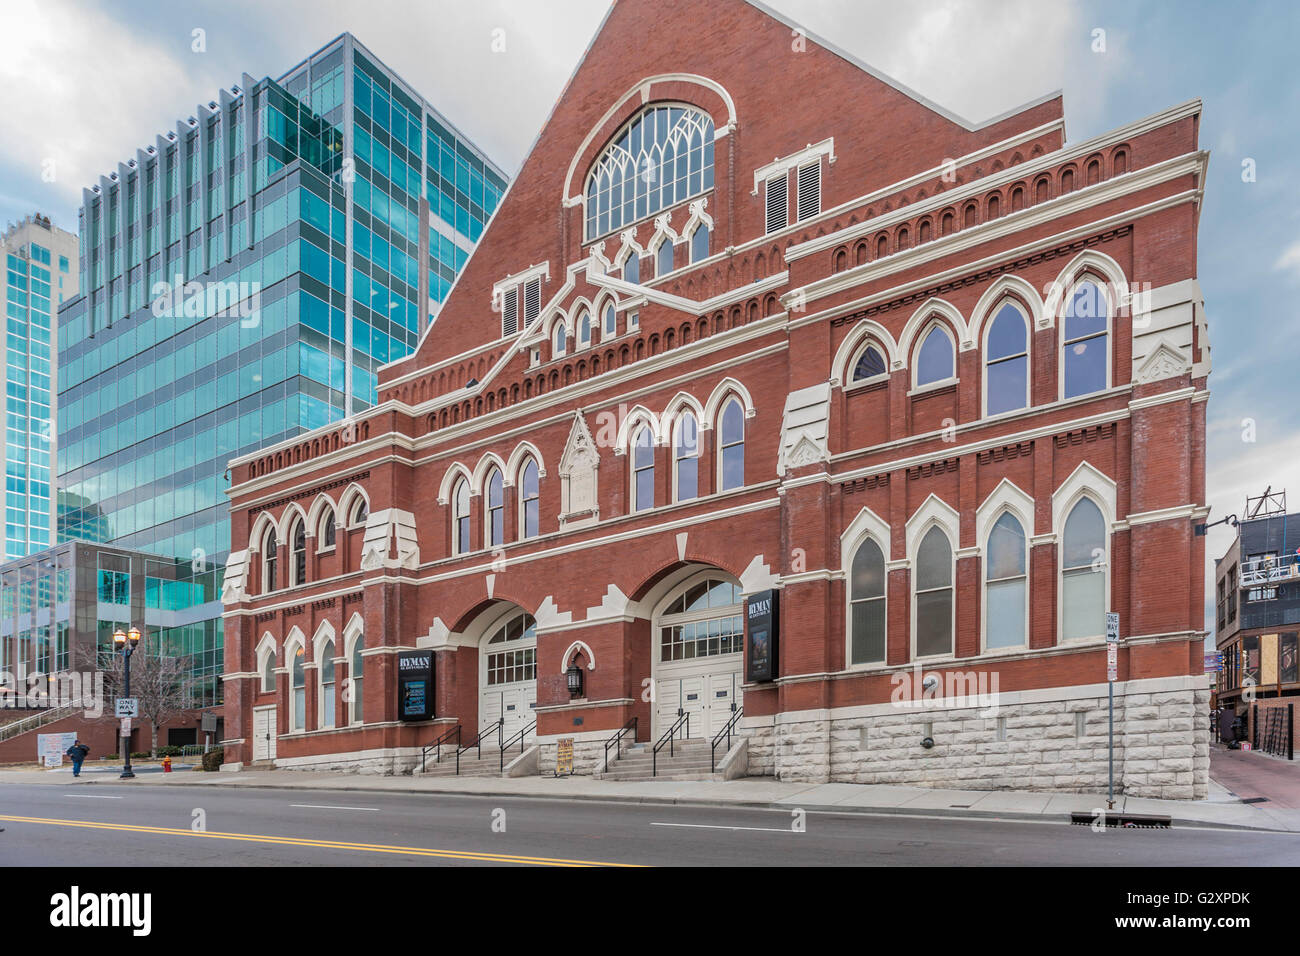 Historic Ryman Auditorium contrasts with modern Sun Trust bank building in downtown Nashville, Tennessee - Stock Image